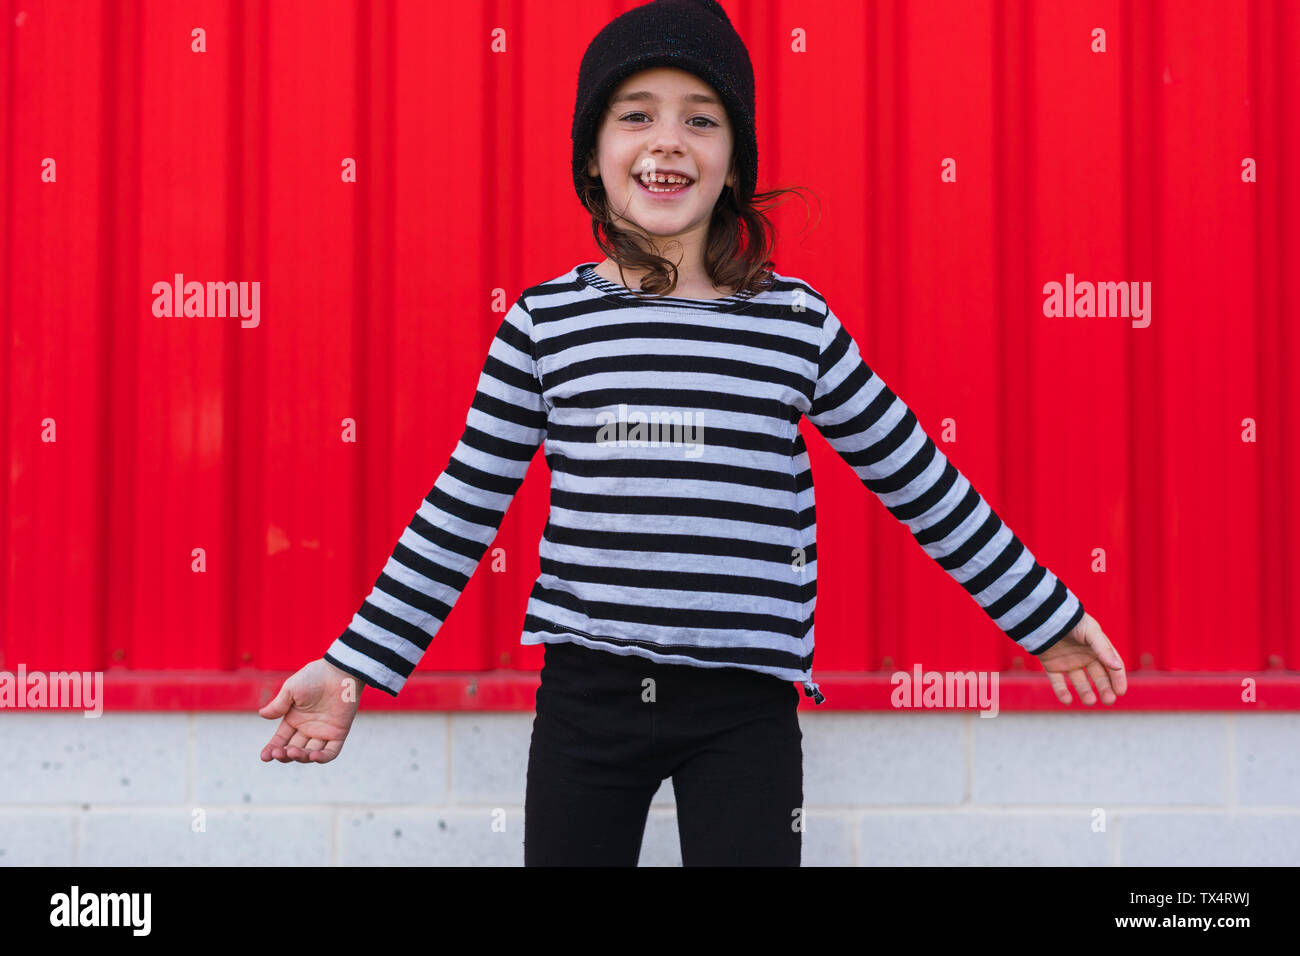 Portrait of happy little girl wearing striped shirt and black cap Stock Photo